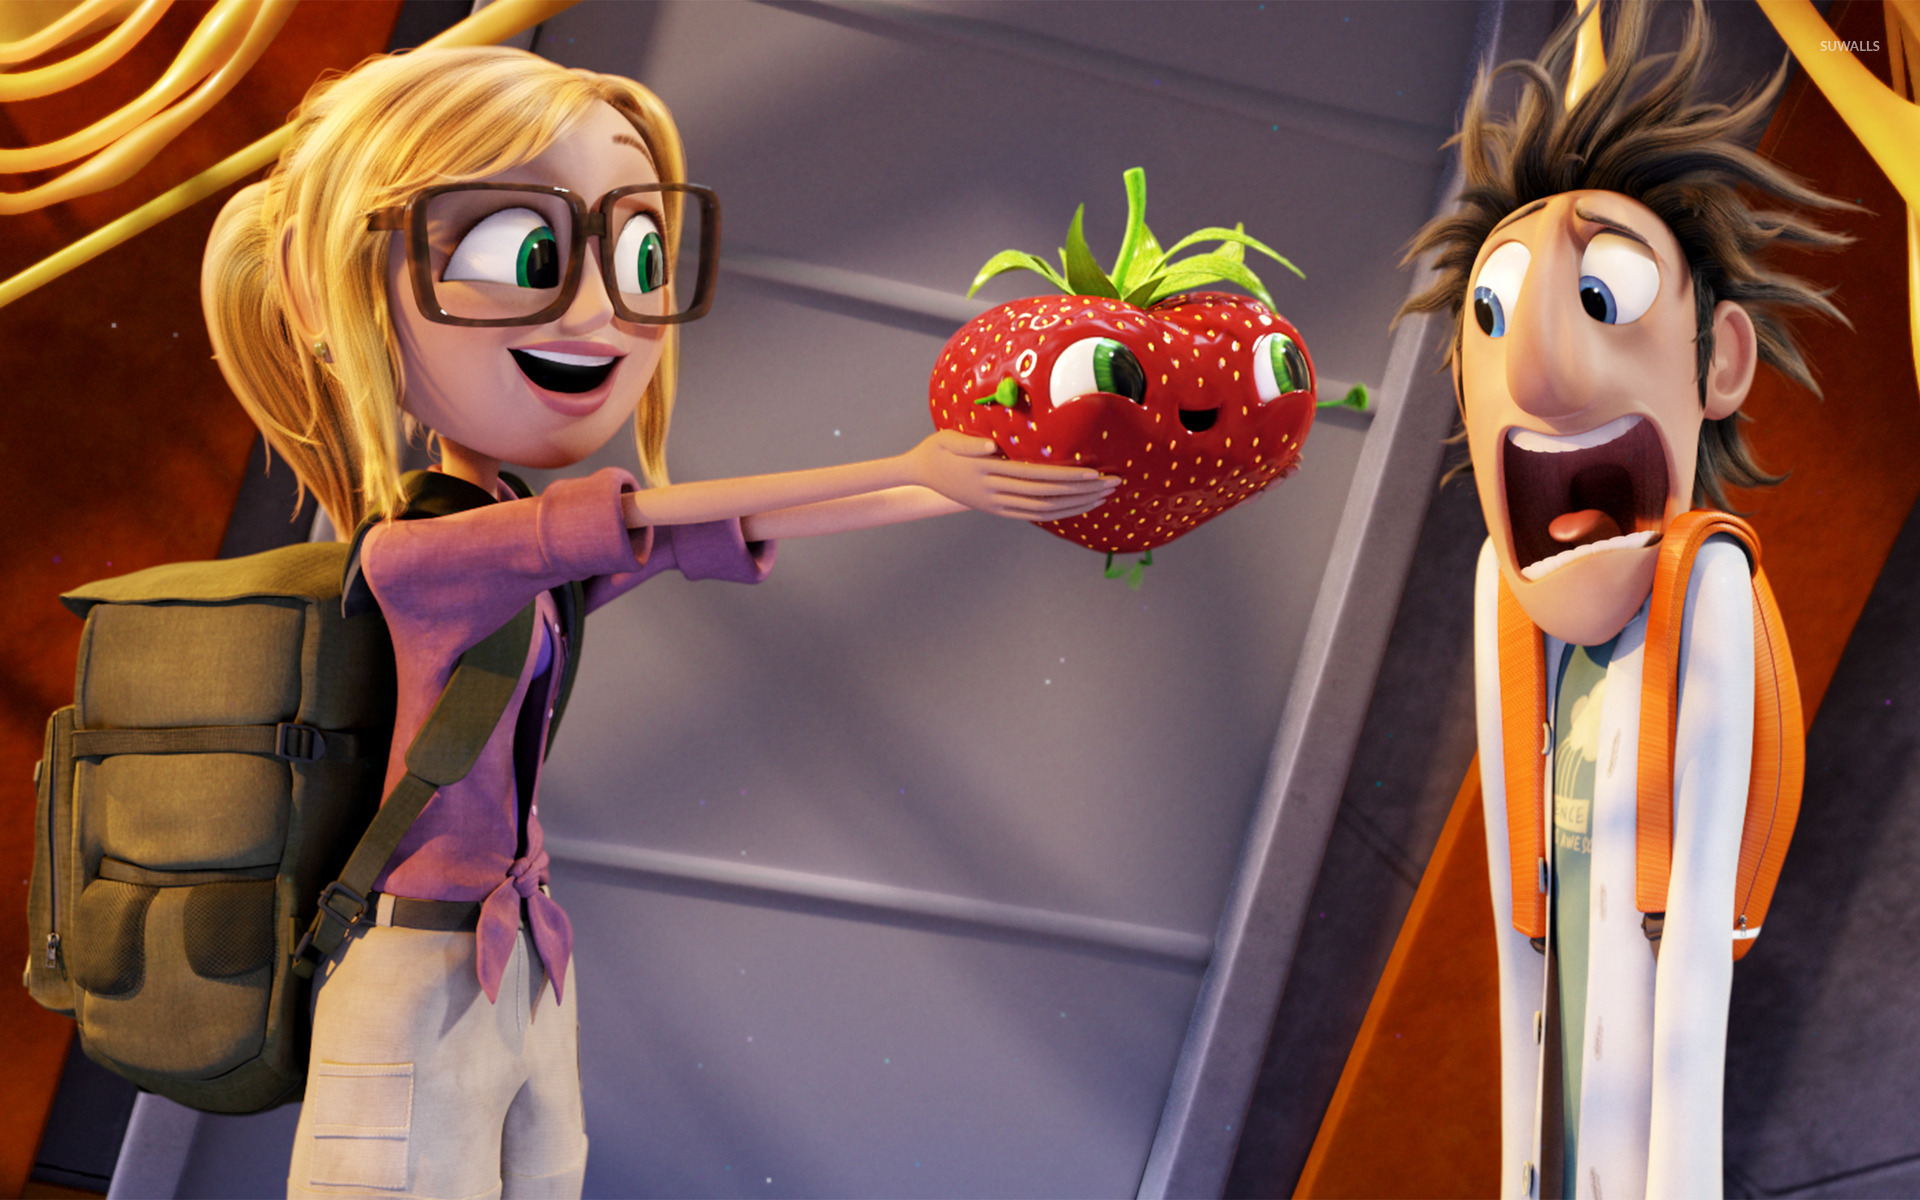 cloudy with a chance of meatballs 2 [2] wallpaper - cartoon